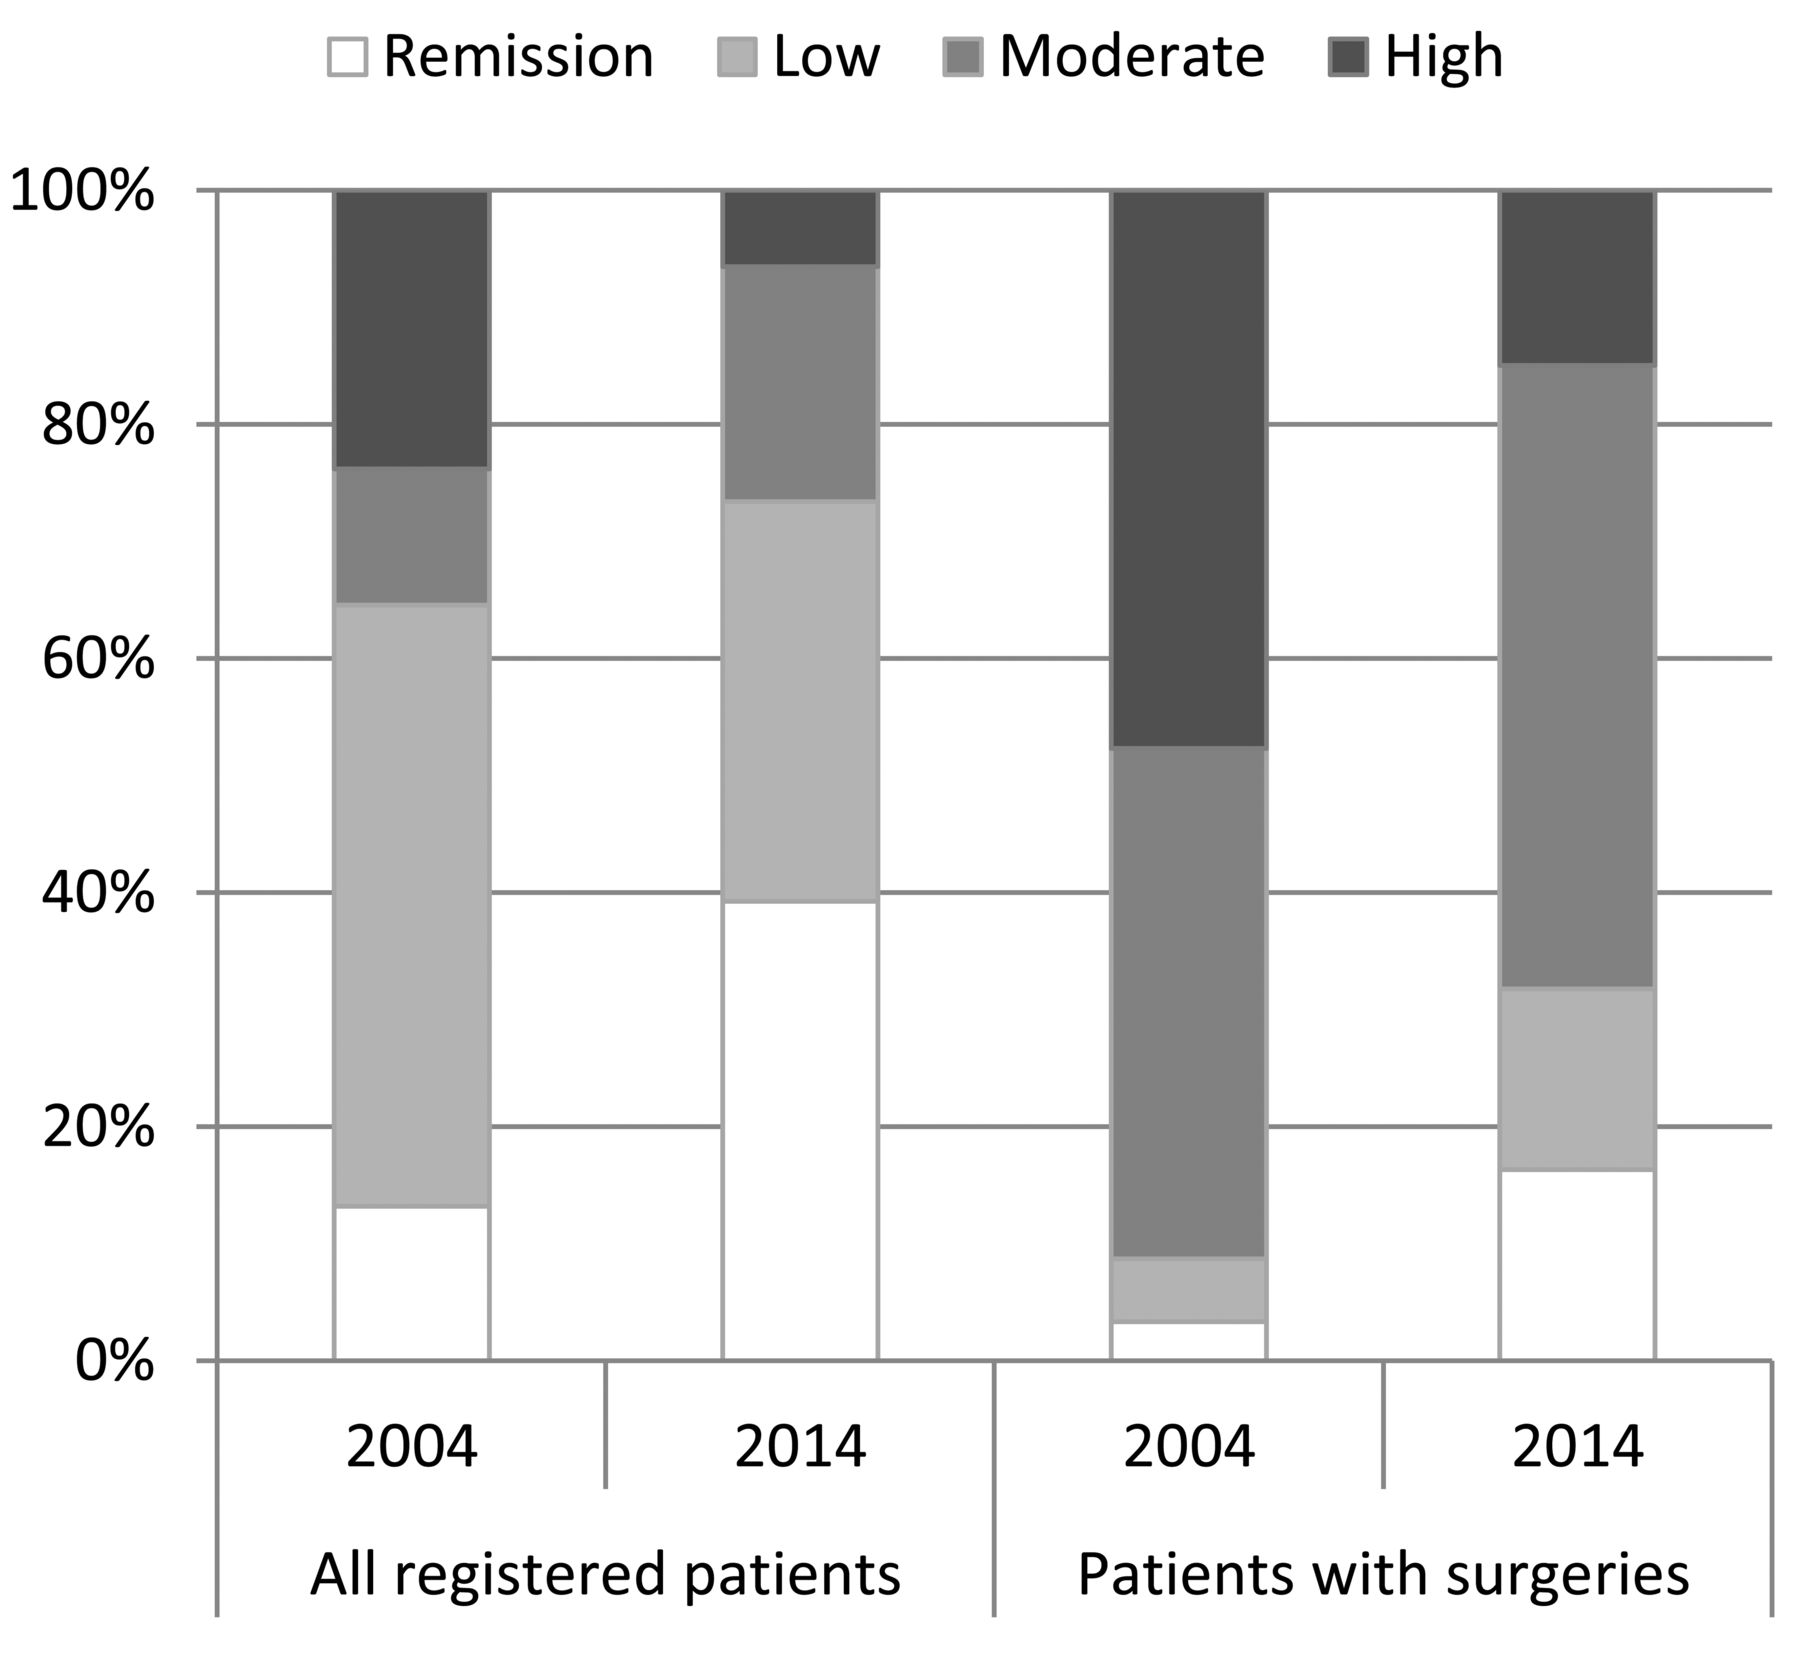 Trends In Treatment Outcomes And Incidence Of Orthopedic Surgery